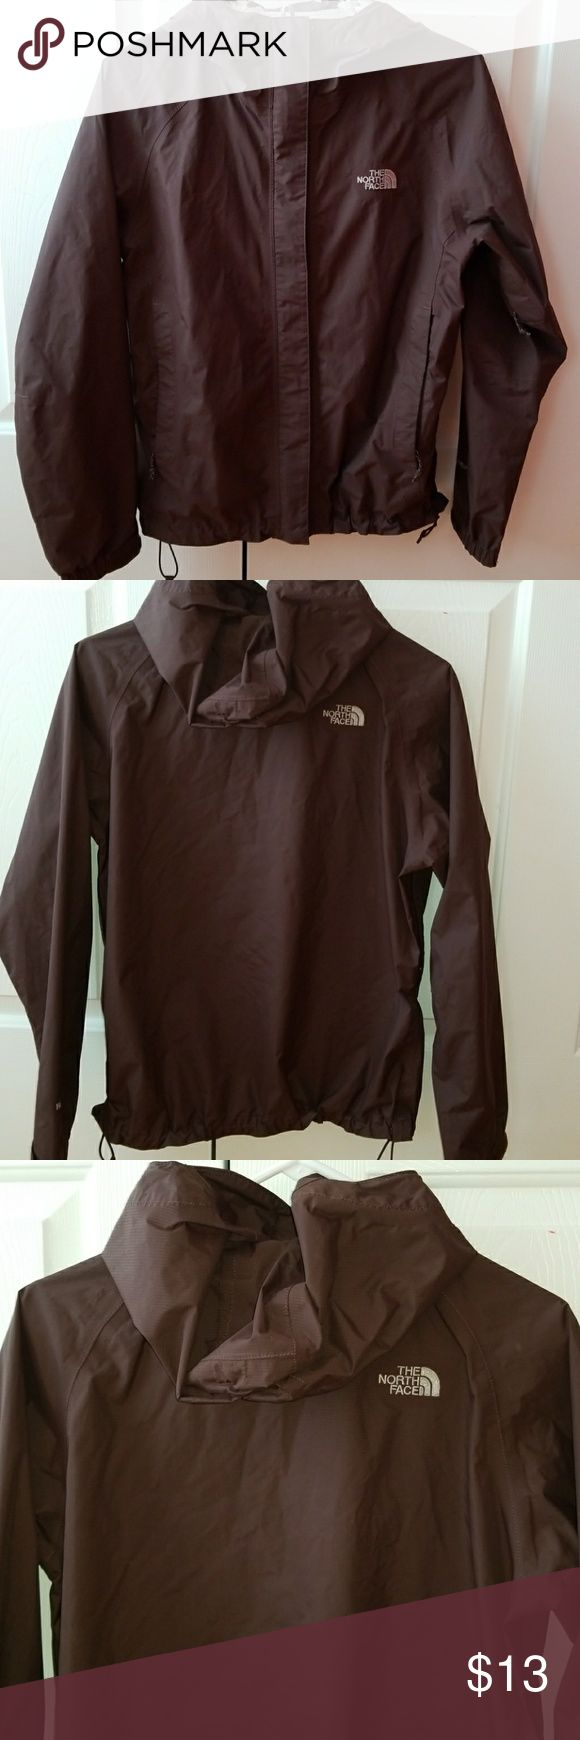 North Face Brown Windbreaker Jacket North Face Brown Windbreaker Jacket! Great jacket that matches with anything. Only issue is wear and tear on the inside of the hood just at the bottom! As seen in pictures.  Good condition. All zippers and velcro work. No damage on the outside!  Size S Exterior 100% Nylon North Face Jackets & Coats